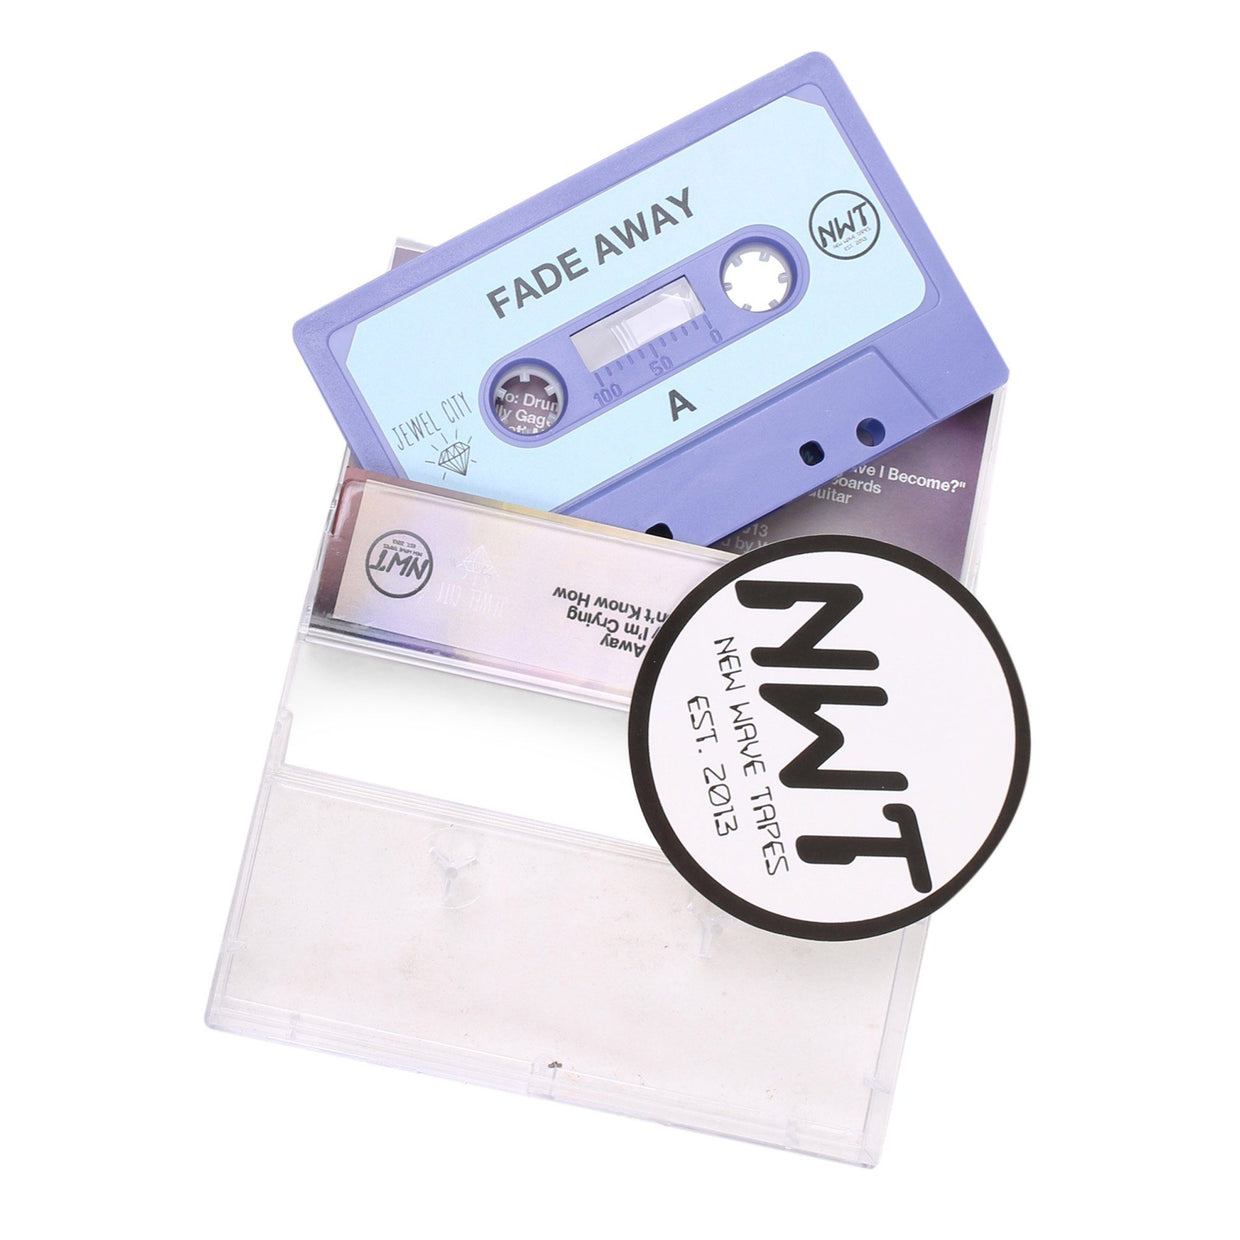 'Fade Away' Limited Edition Cassette